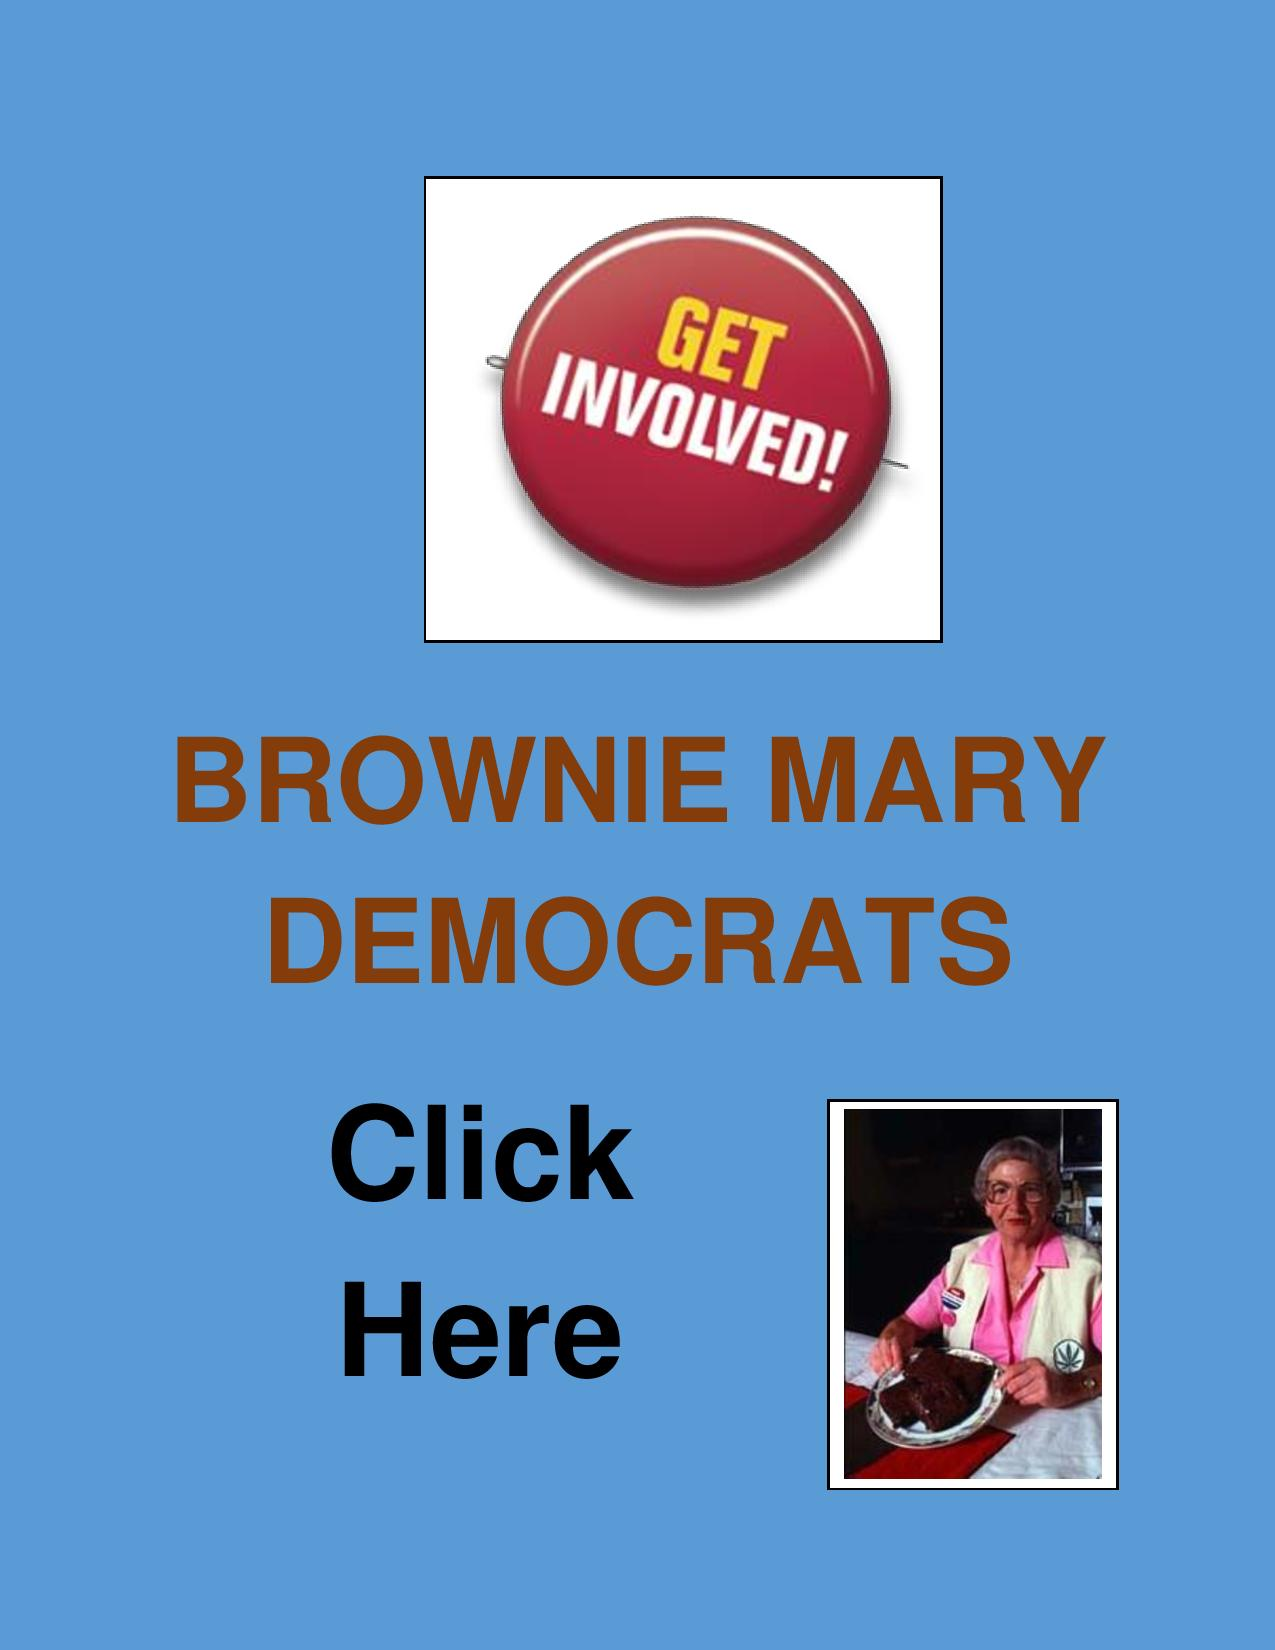 Join_BROWNIE_MARY-jpg.jpg